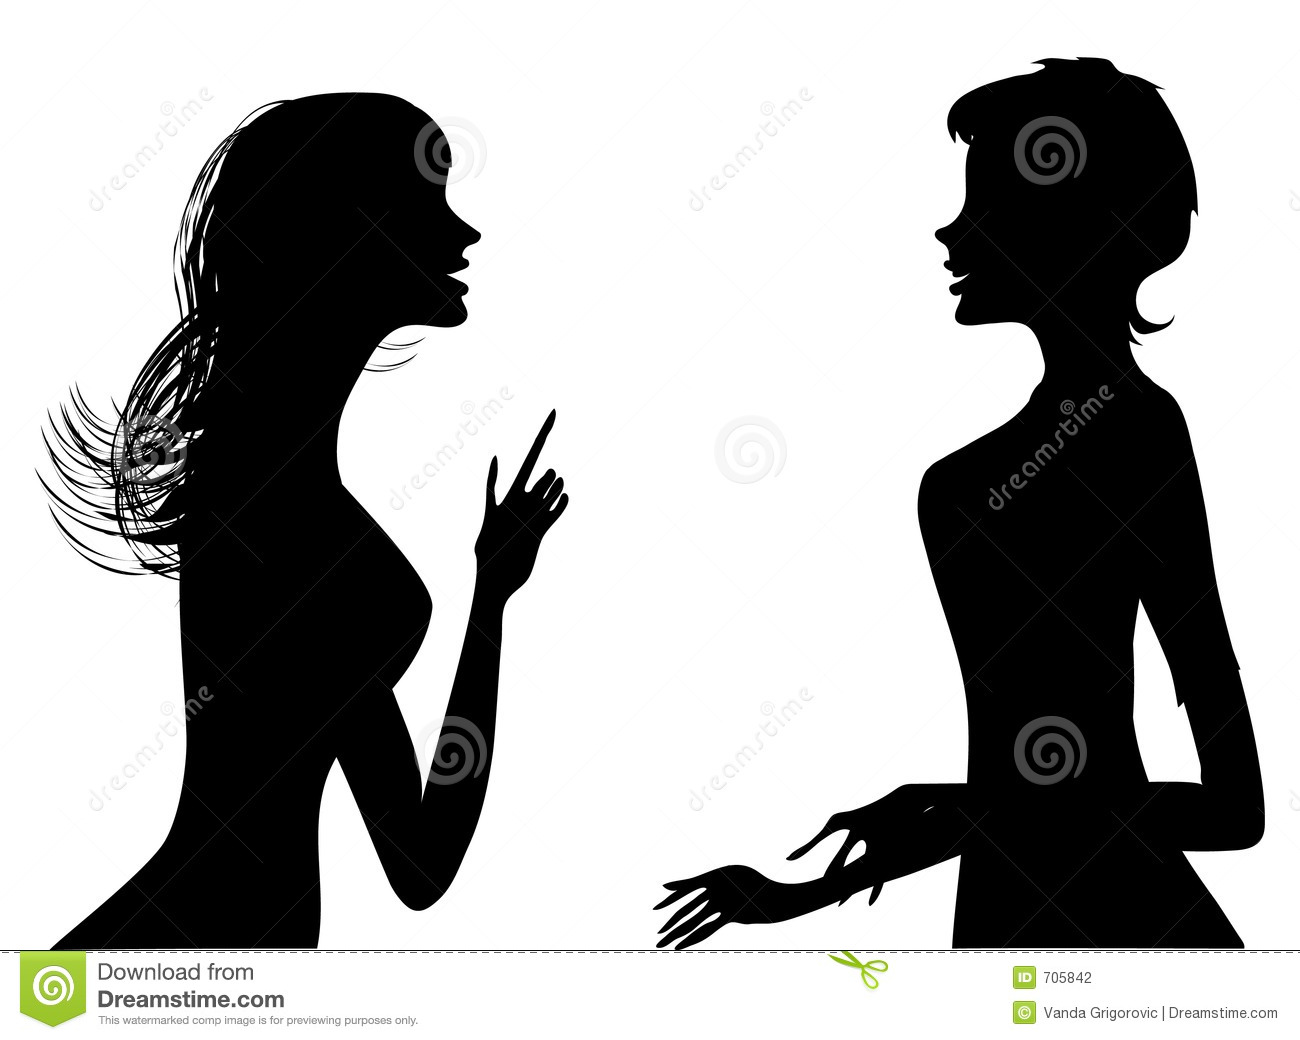 Gossip Silhouette Stock Photography - Image: 705842